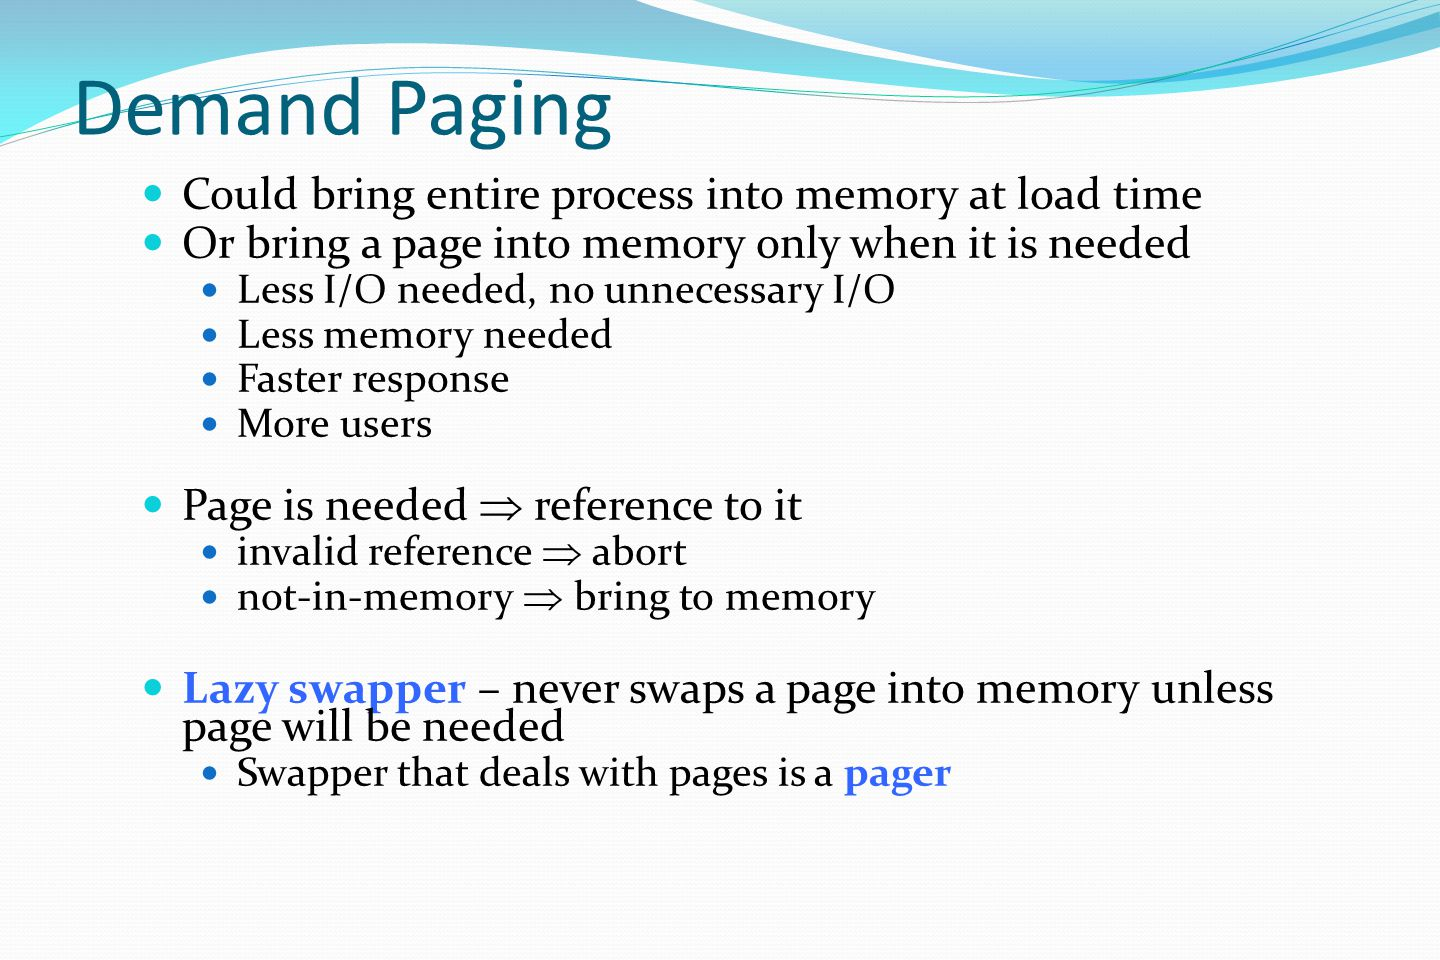 Demand Paging Could bring entire process into memory at load time Or bring a page into memory only when it is needed Less I/O needed, no unnecessary I/O Less memory needed Faster response More users Page is needed  reference to it invalid reference  abort not-in-memory  bring to memory Lazy swapper – never swaps a page into memory unless page will be needed Swapper that deals with pages is a pager